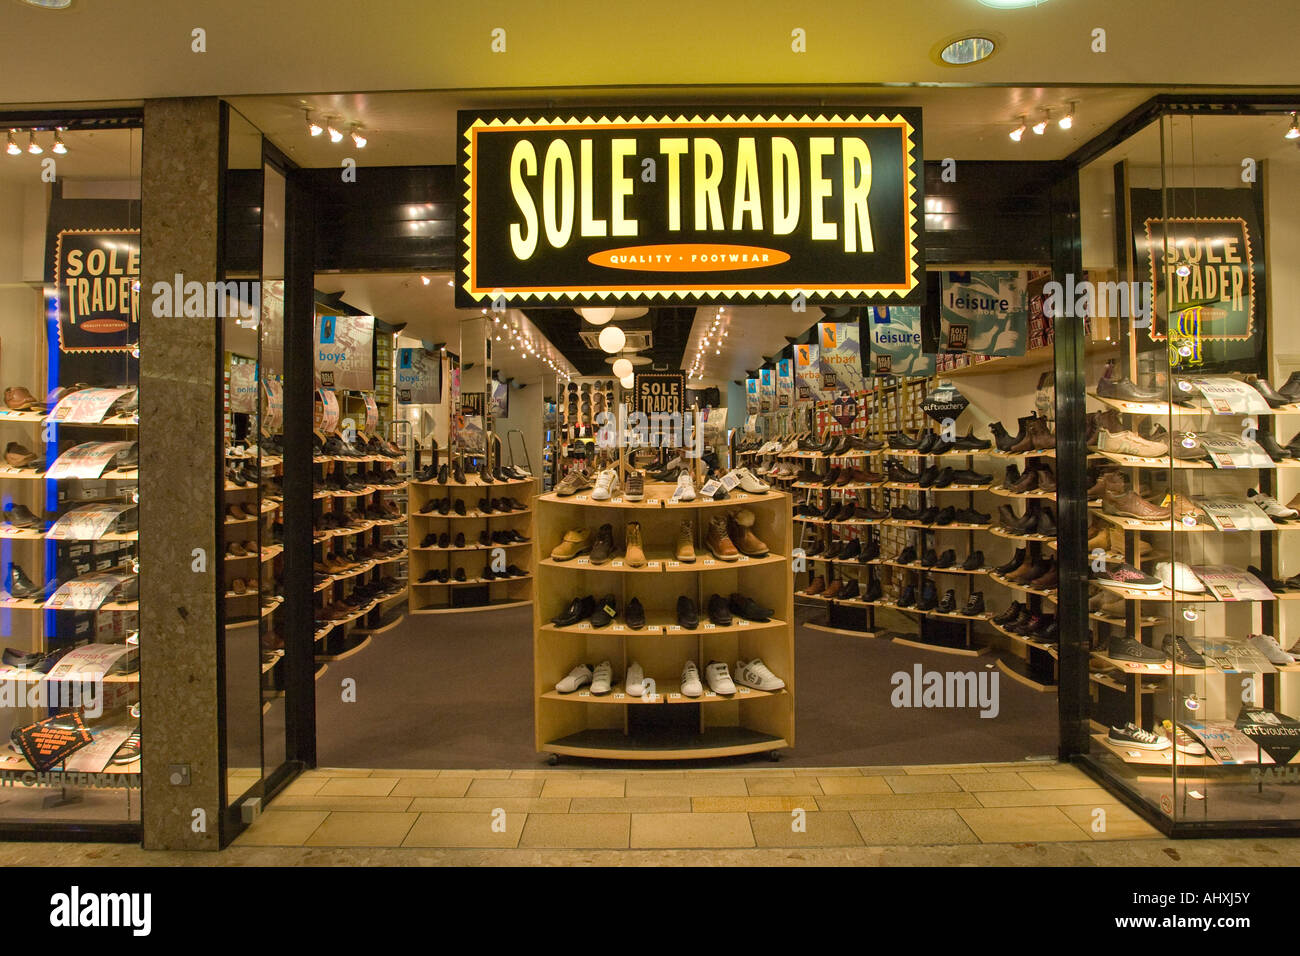 Sole Trader shoe shop at the Harvey Shopping Centre in Harlow, Essex, UK - Stock Image